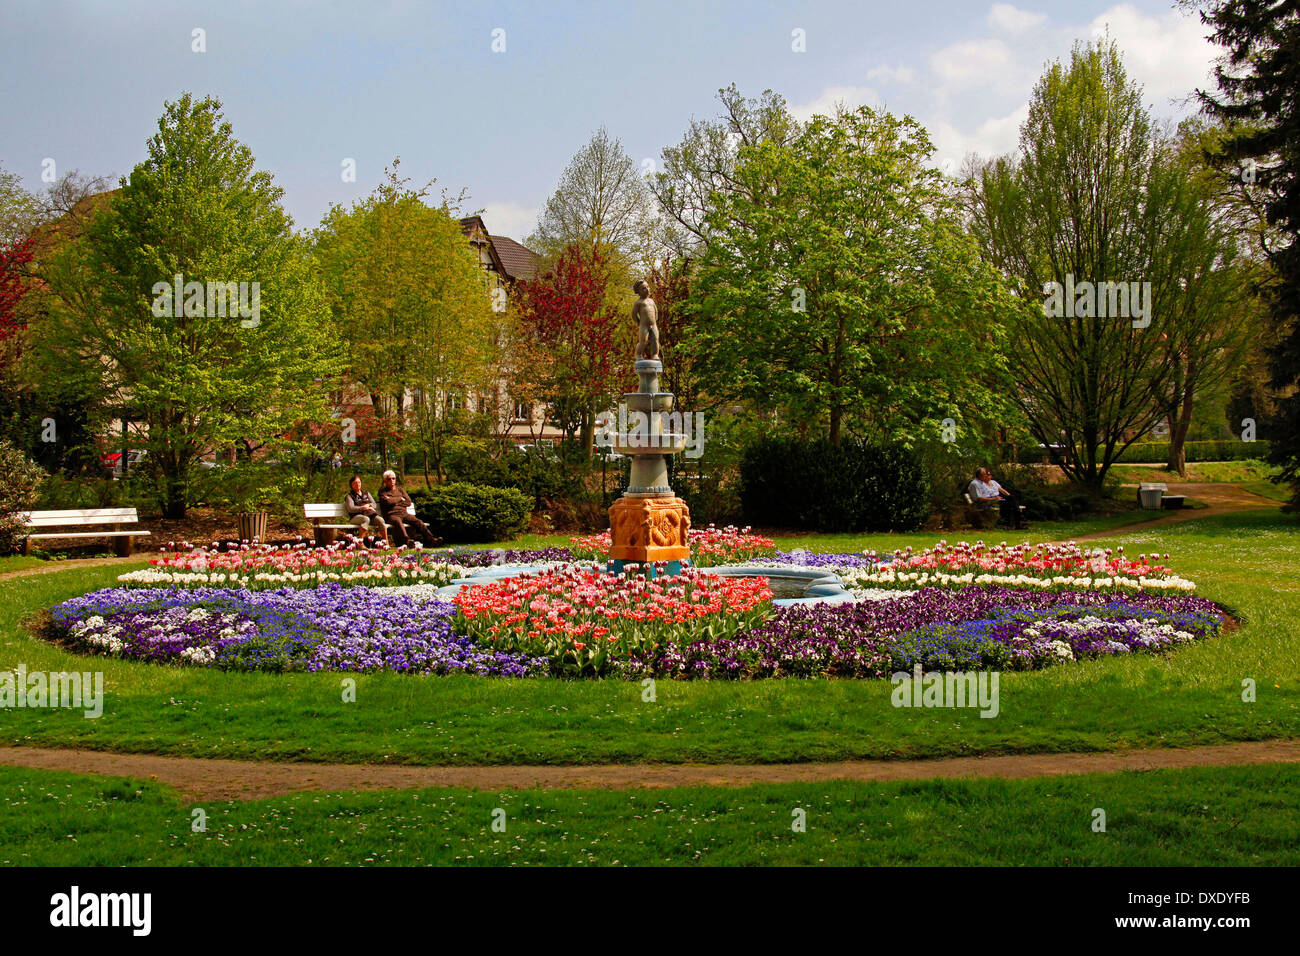 District Of Fulda Stock Photos & District Of Fulda Stock Images - Alamy